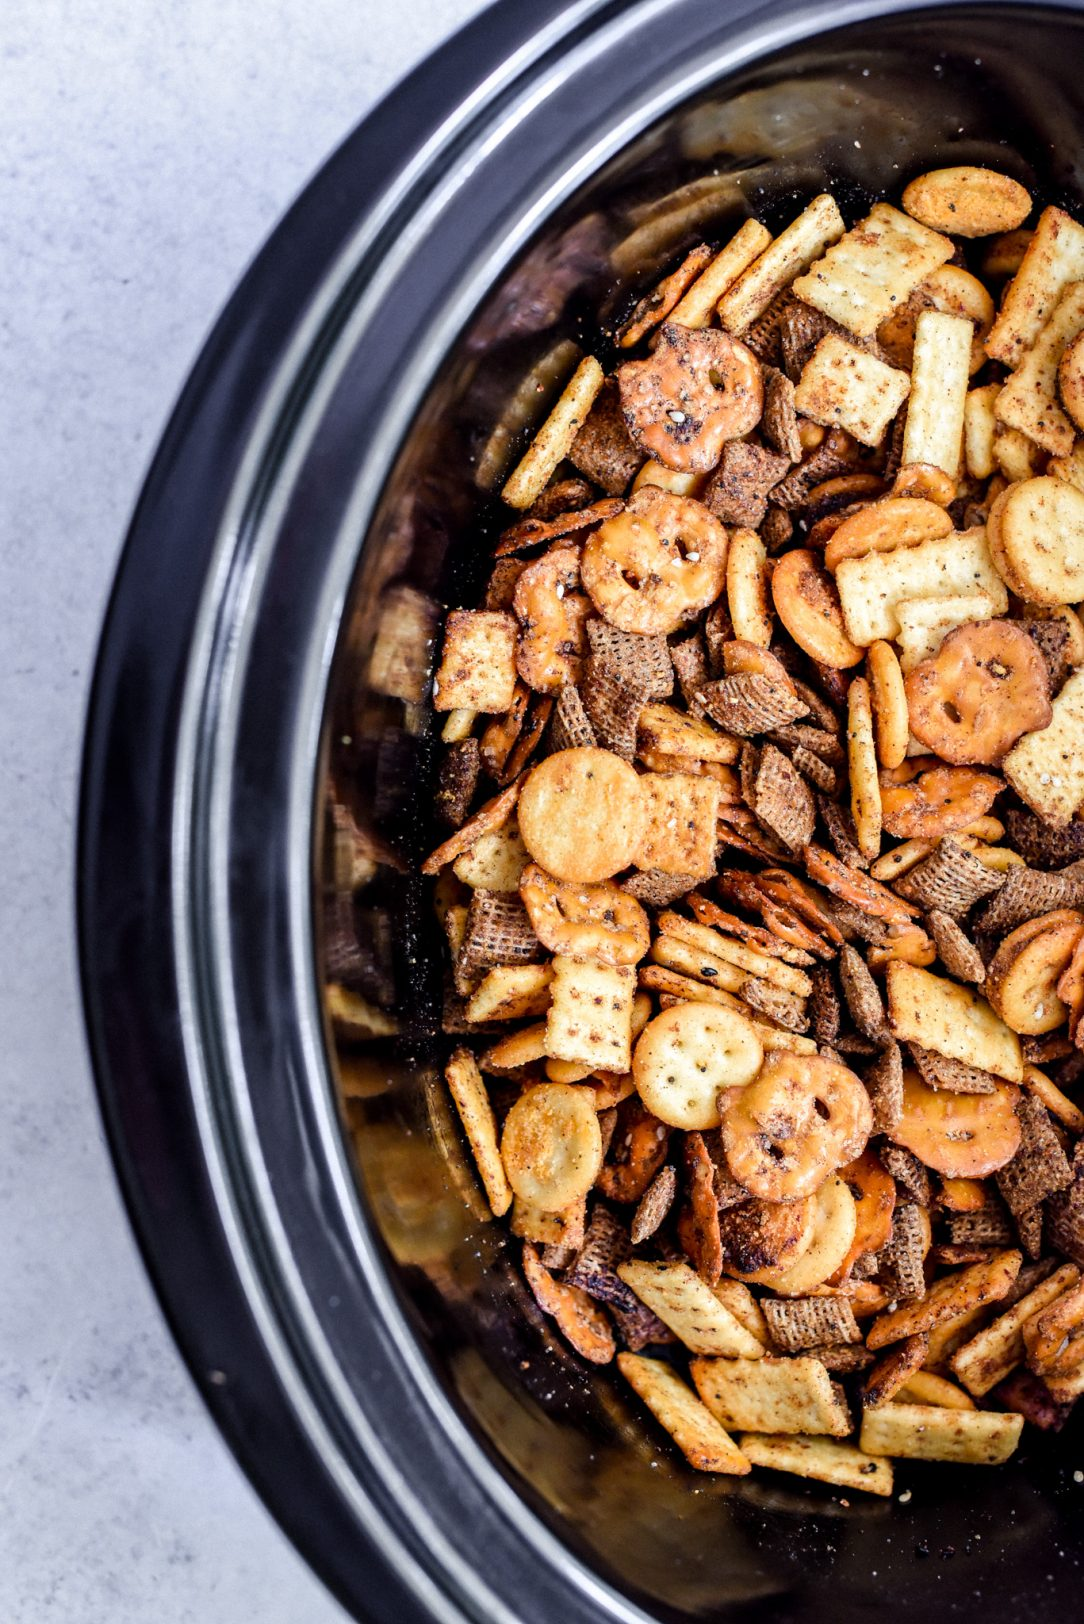 Snack mix in a crock pot